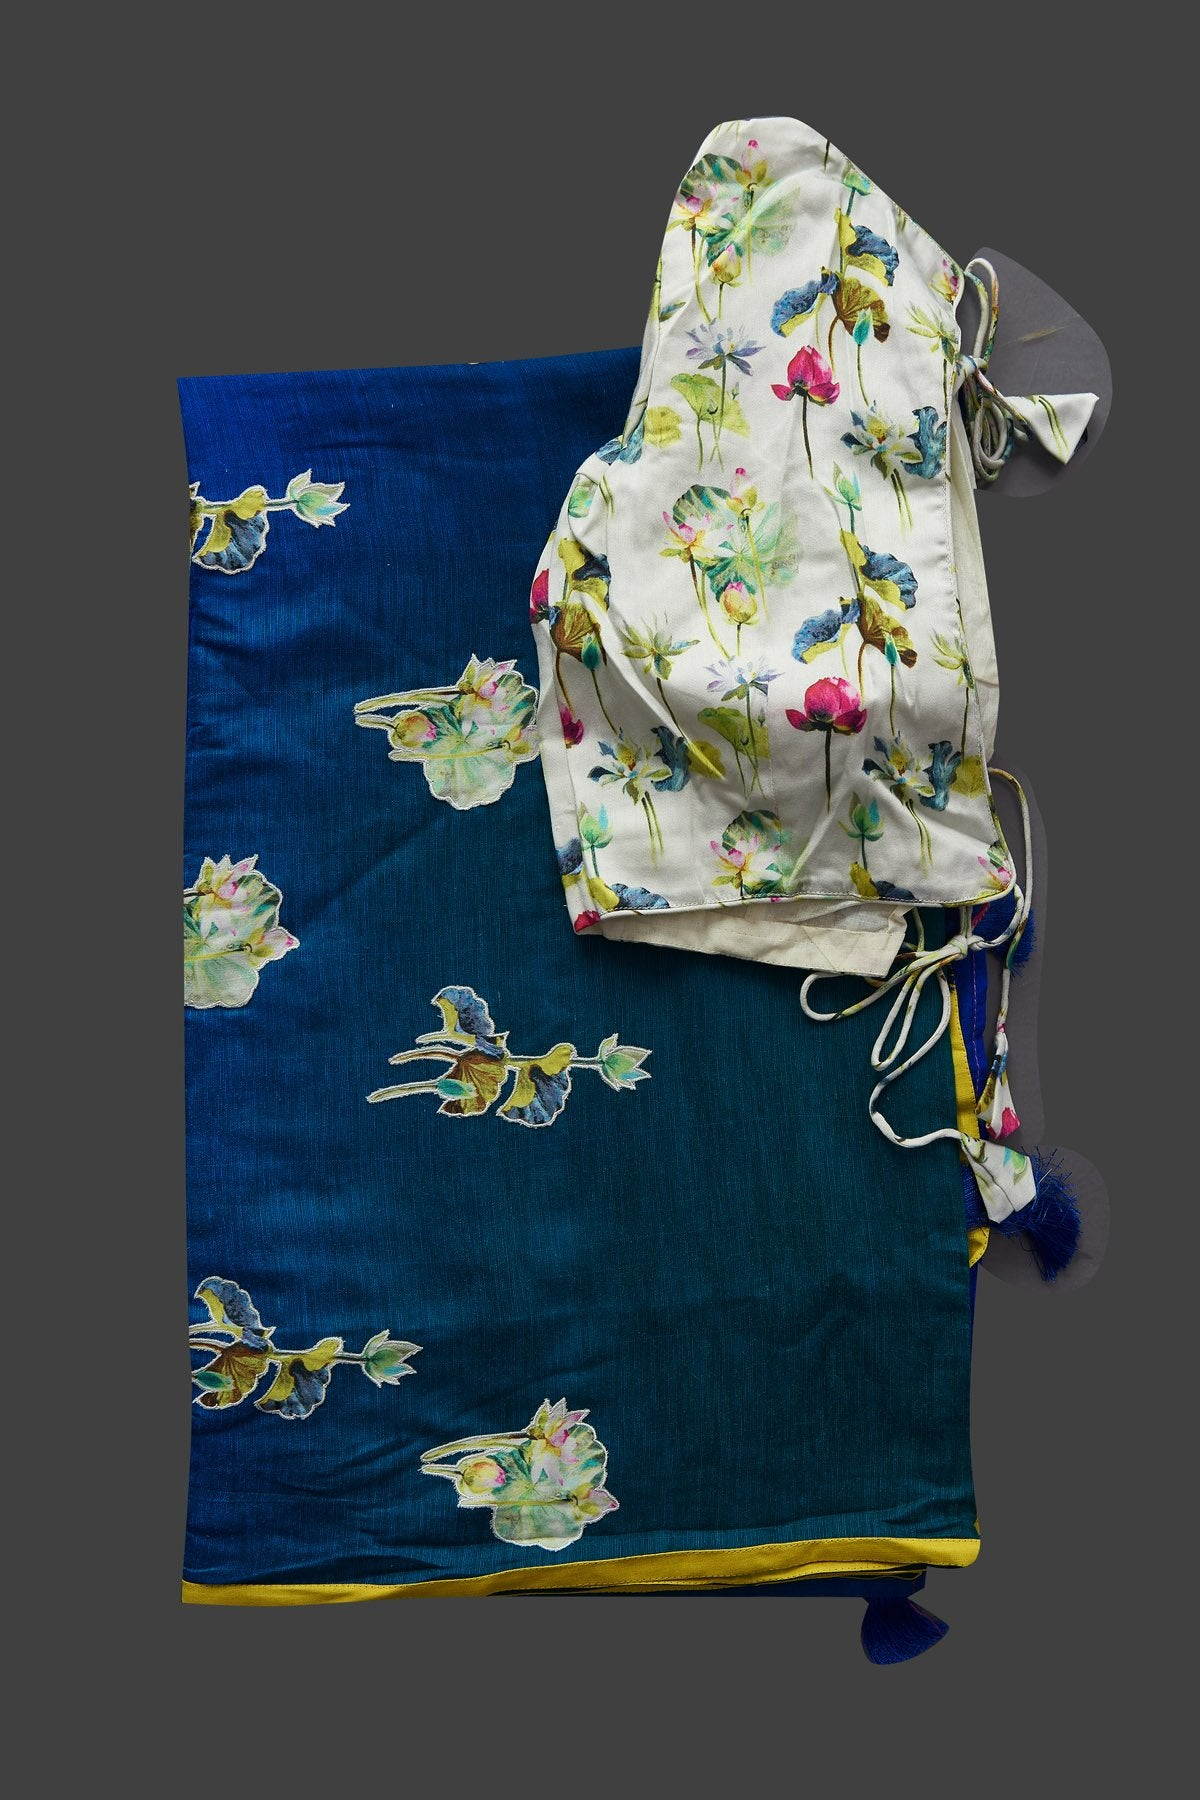 Shop blue and green applique work linen saree online in USA with white floral saree blouse. Radiate elegance with designer sarees with blouse, linen sarees from Pure Elegance Indian fashion boutique in USA. We bring a especially curated collection of ethnic saris for Indian women in USA under one roof!-blouse